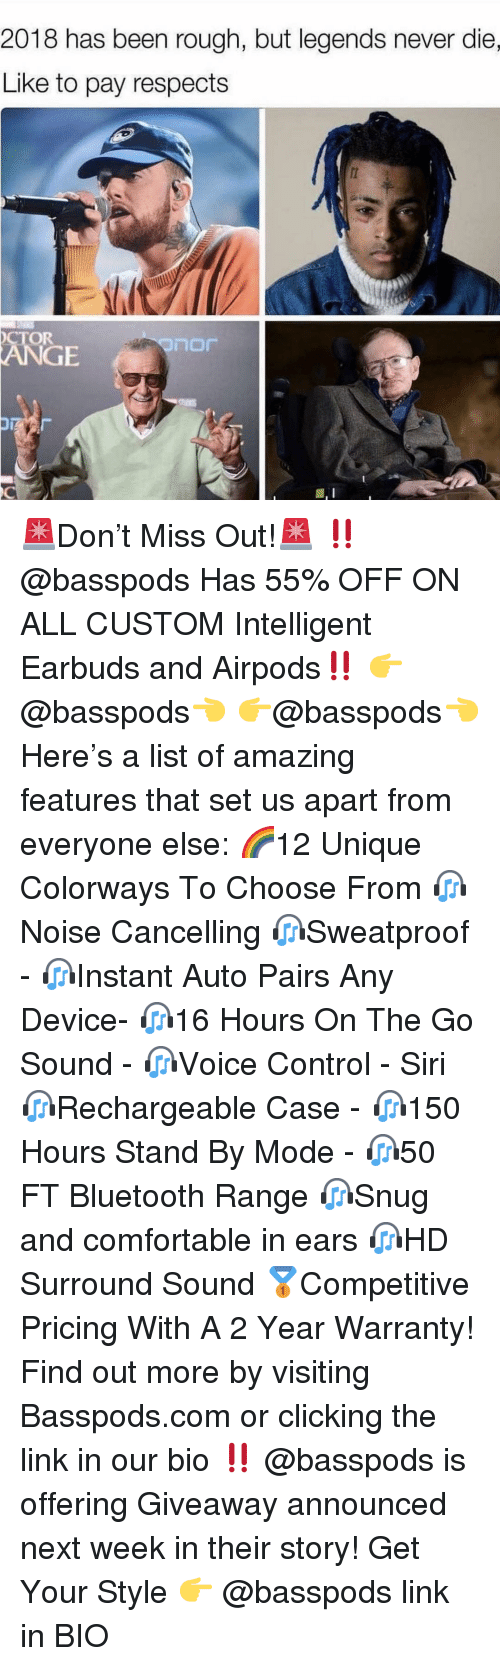 Legends Never Die: 2018 has been rough, but legends never die,  Like to pay respects  CTOR  门口厂  GE 🚨Don't Miss Out!🚨 ‼️ @basspods Has 55% OFF ON ALL CUSTOM Intelligent Earbuds and Airpods‼️ 👉@basspods👈 👉@basspods👈 Here's a list of amazing features that set us apart from everyone else: 🌈12 Unique Colorways To Choose From 🎧Noise Cancelling 🎧Sweatproof - 🎧Instant Auto Pairs Any Device- 🎧16 Hours On The Go Sound - 🎧Voice Control - Siri 🎧Rechargeable Case - 🎧150 Hours Stand By Mode - 🎧50 FT Bluetooth Range 🎧Snug and comfortable in ears 🎧HD Surround Sound 🥇Competitive Pricing With A 2 Year Warranty! Find out more by visiting Basspods.com or clicking the link in our bio ‼️ @basspods is offering Giveaway announced next week in their story! Get Your Style 👉 @basspods link in BIO